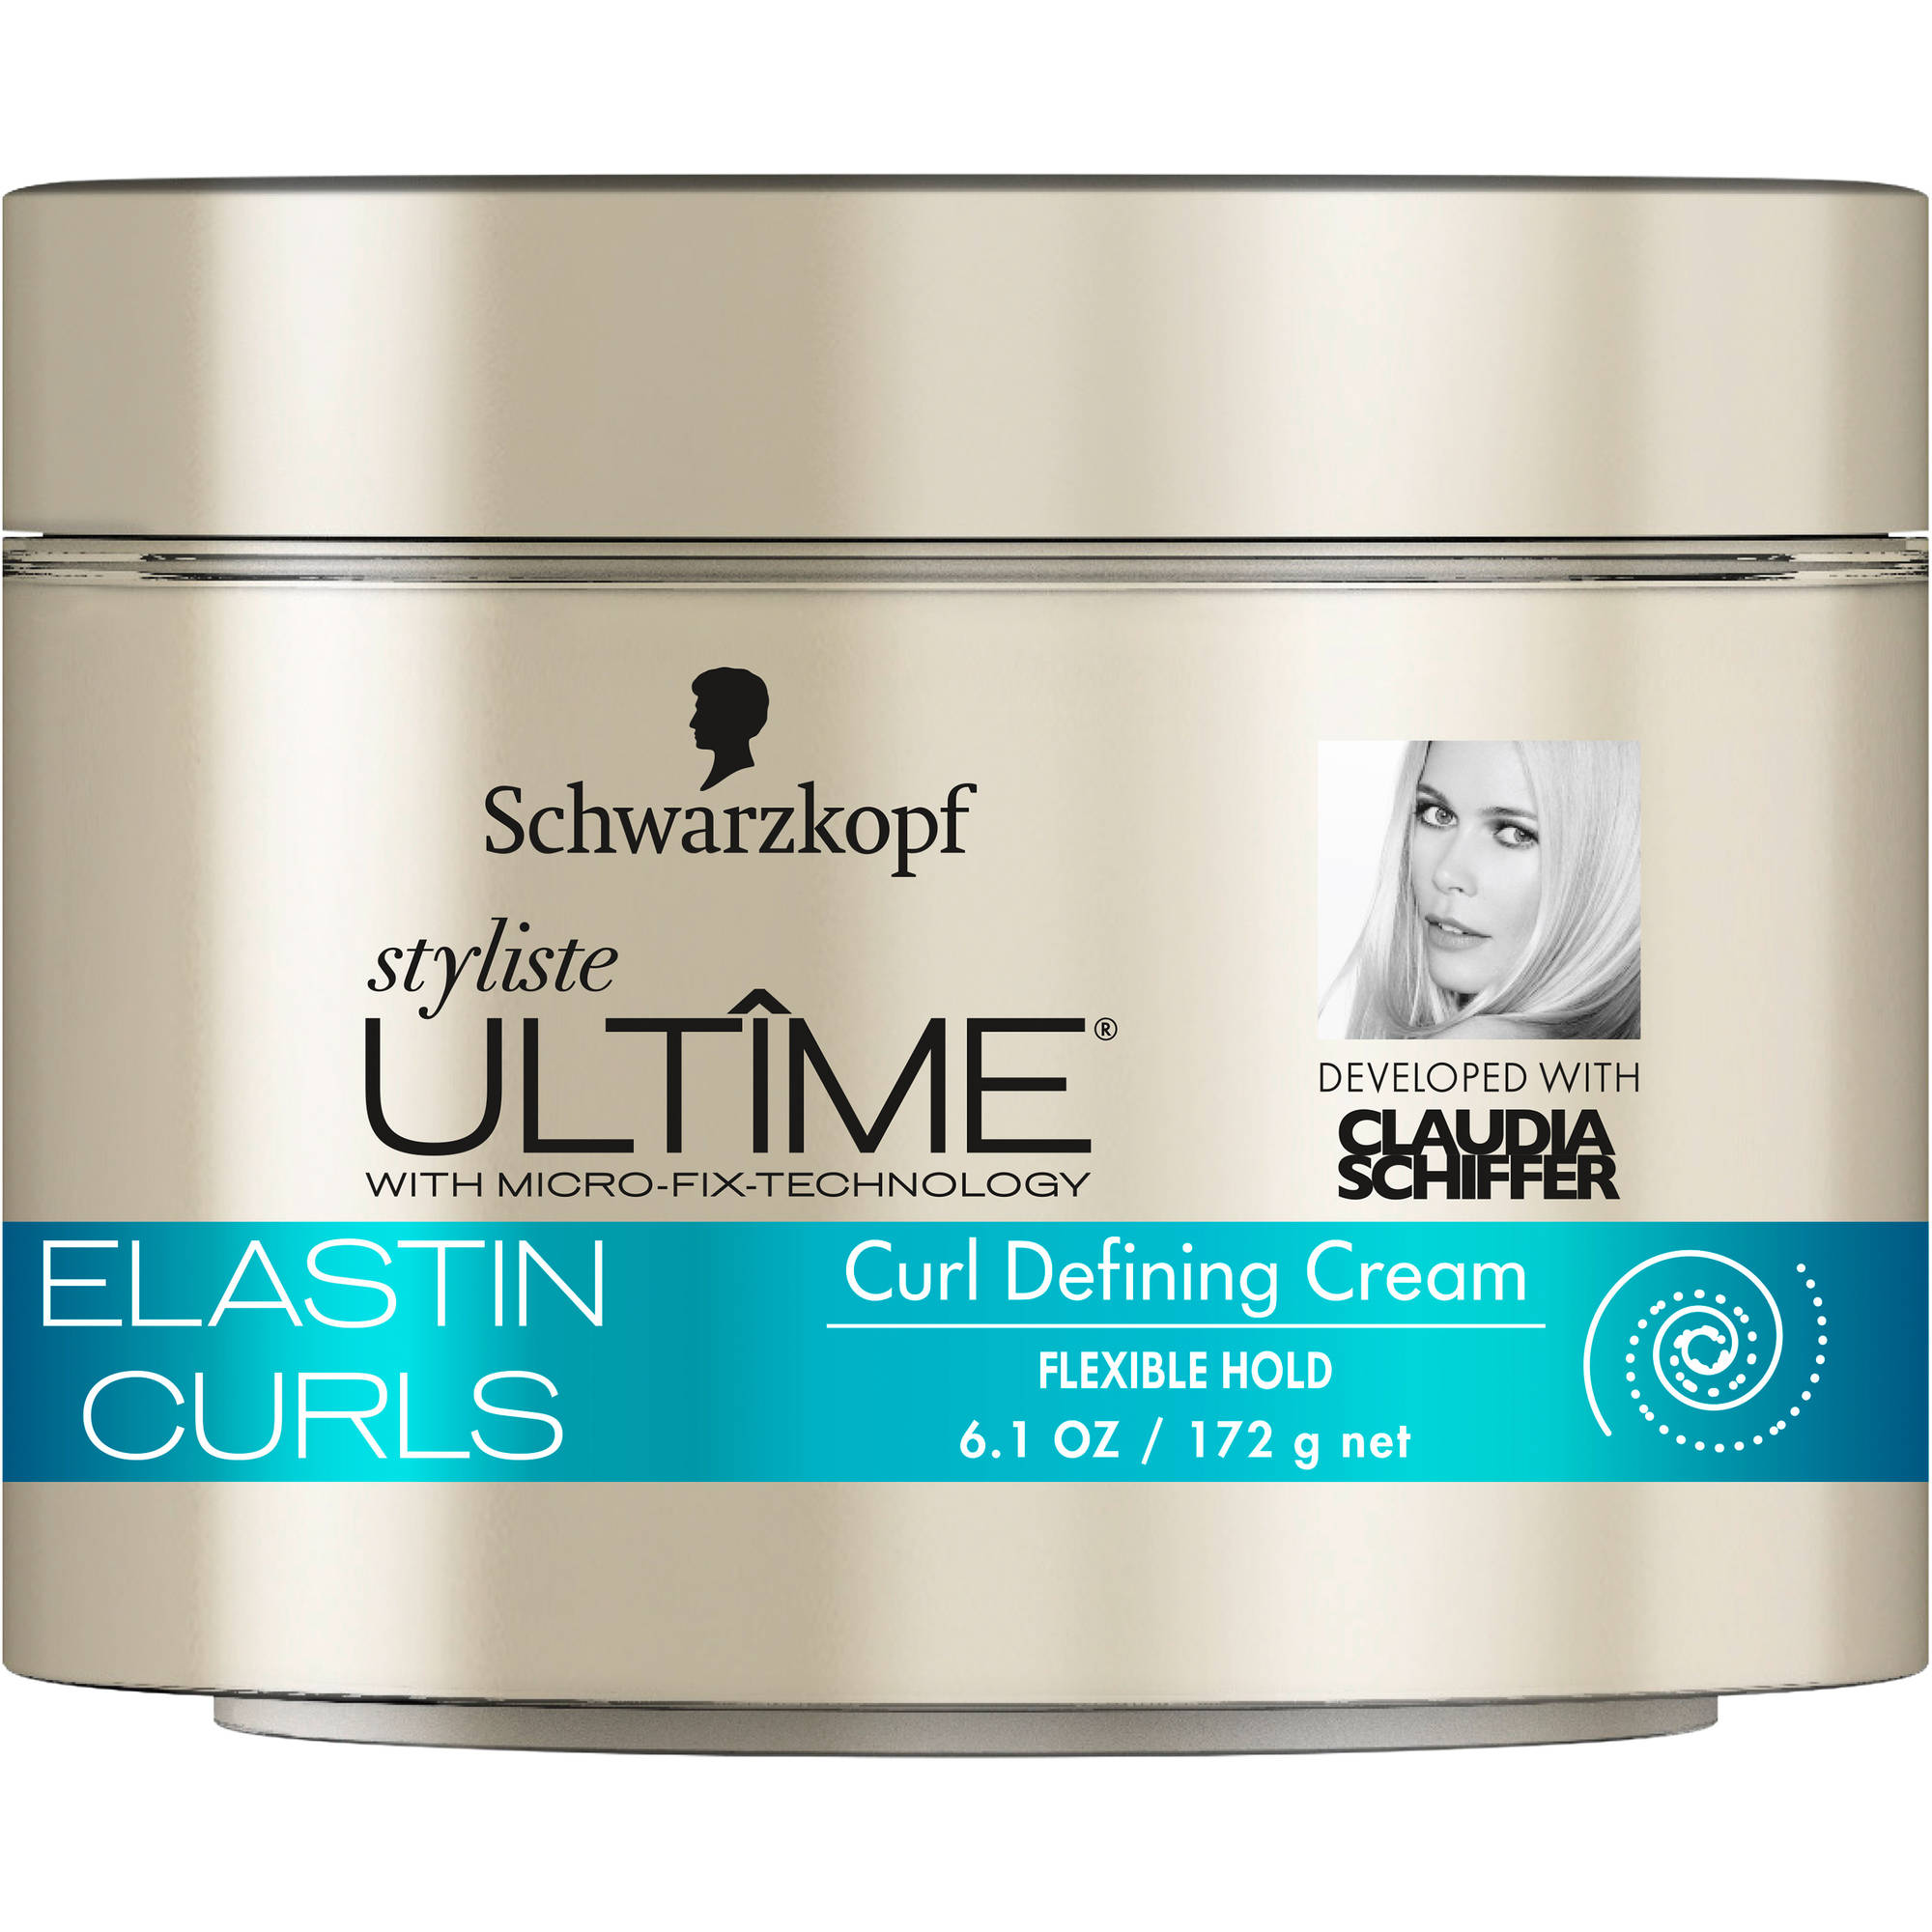 Schwarzkopf Styliste Ultime Elastin Curls Curl Defining Cream , 6.1 oz